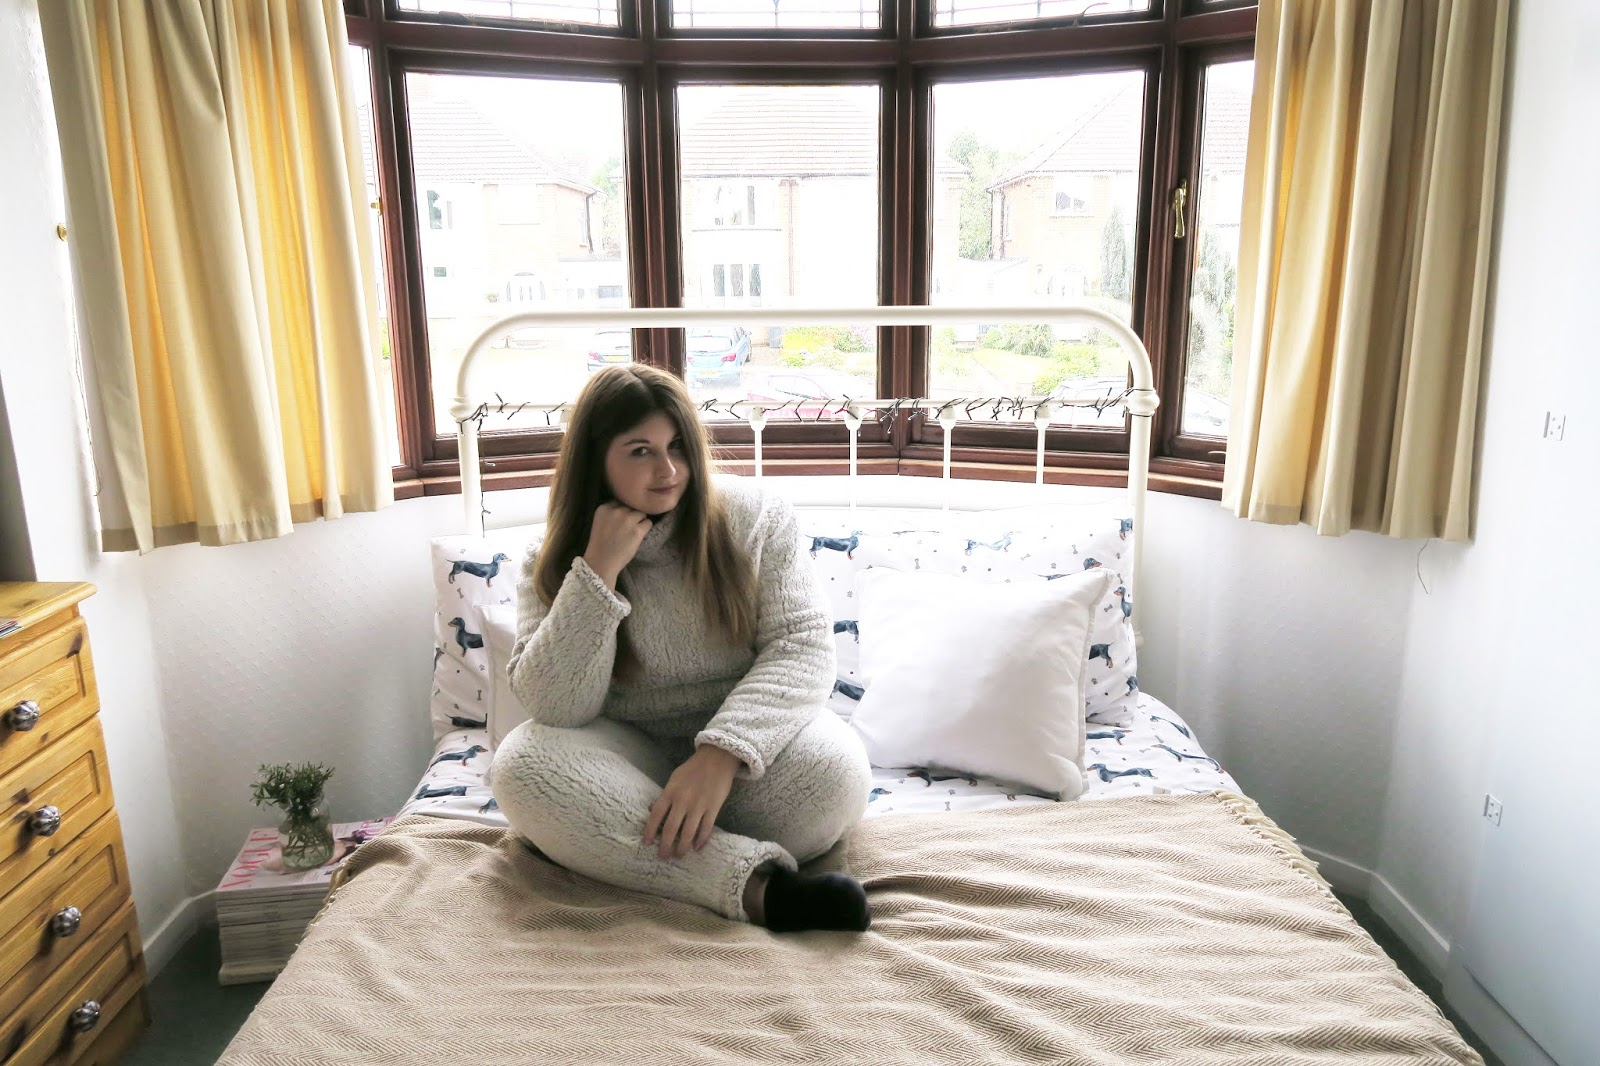 Grace can be seen sitting cross legged on her bed. She is wearing a thick fluffy grey loungewear set